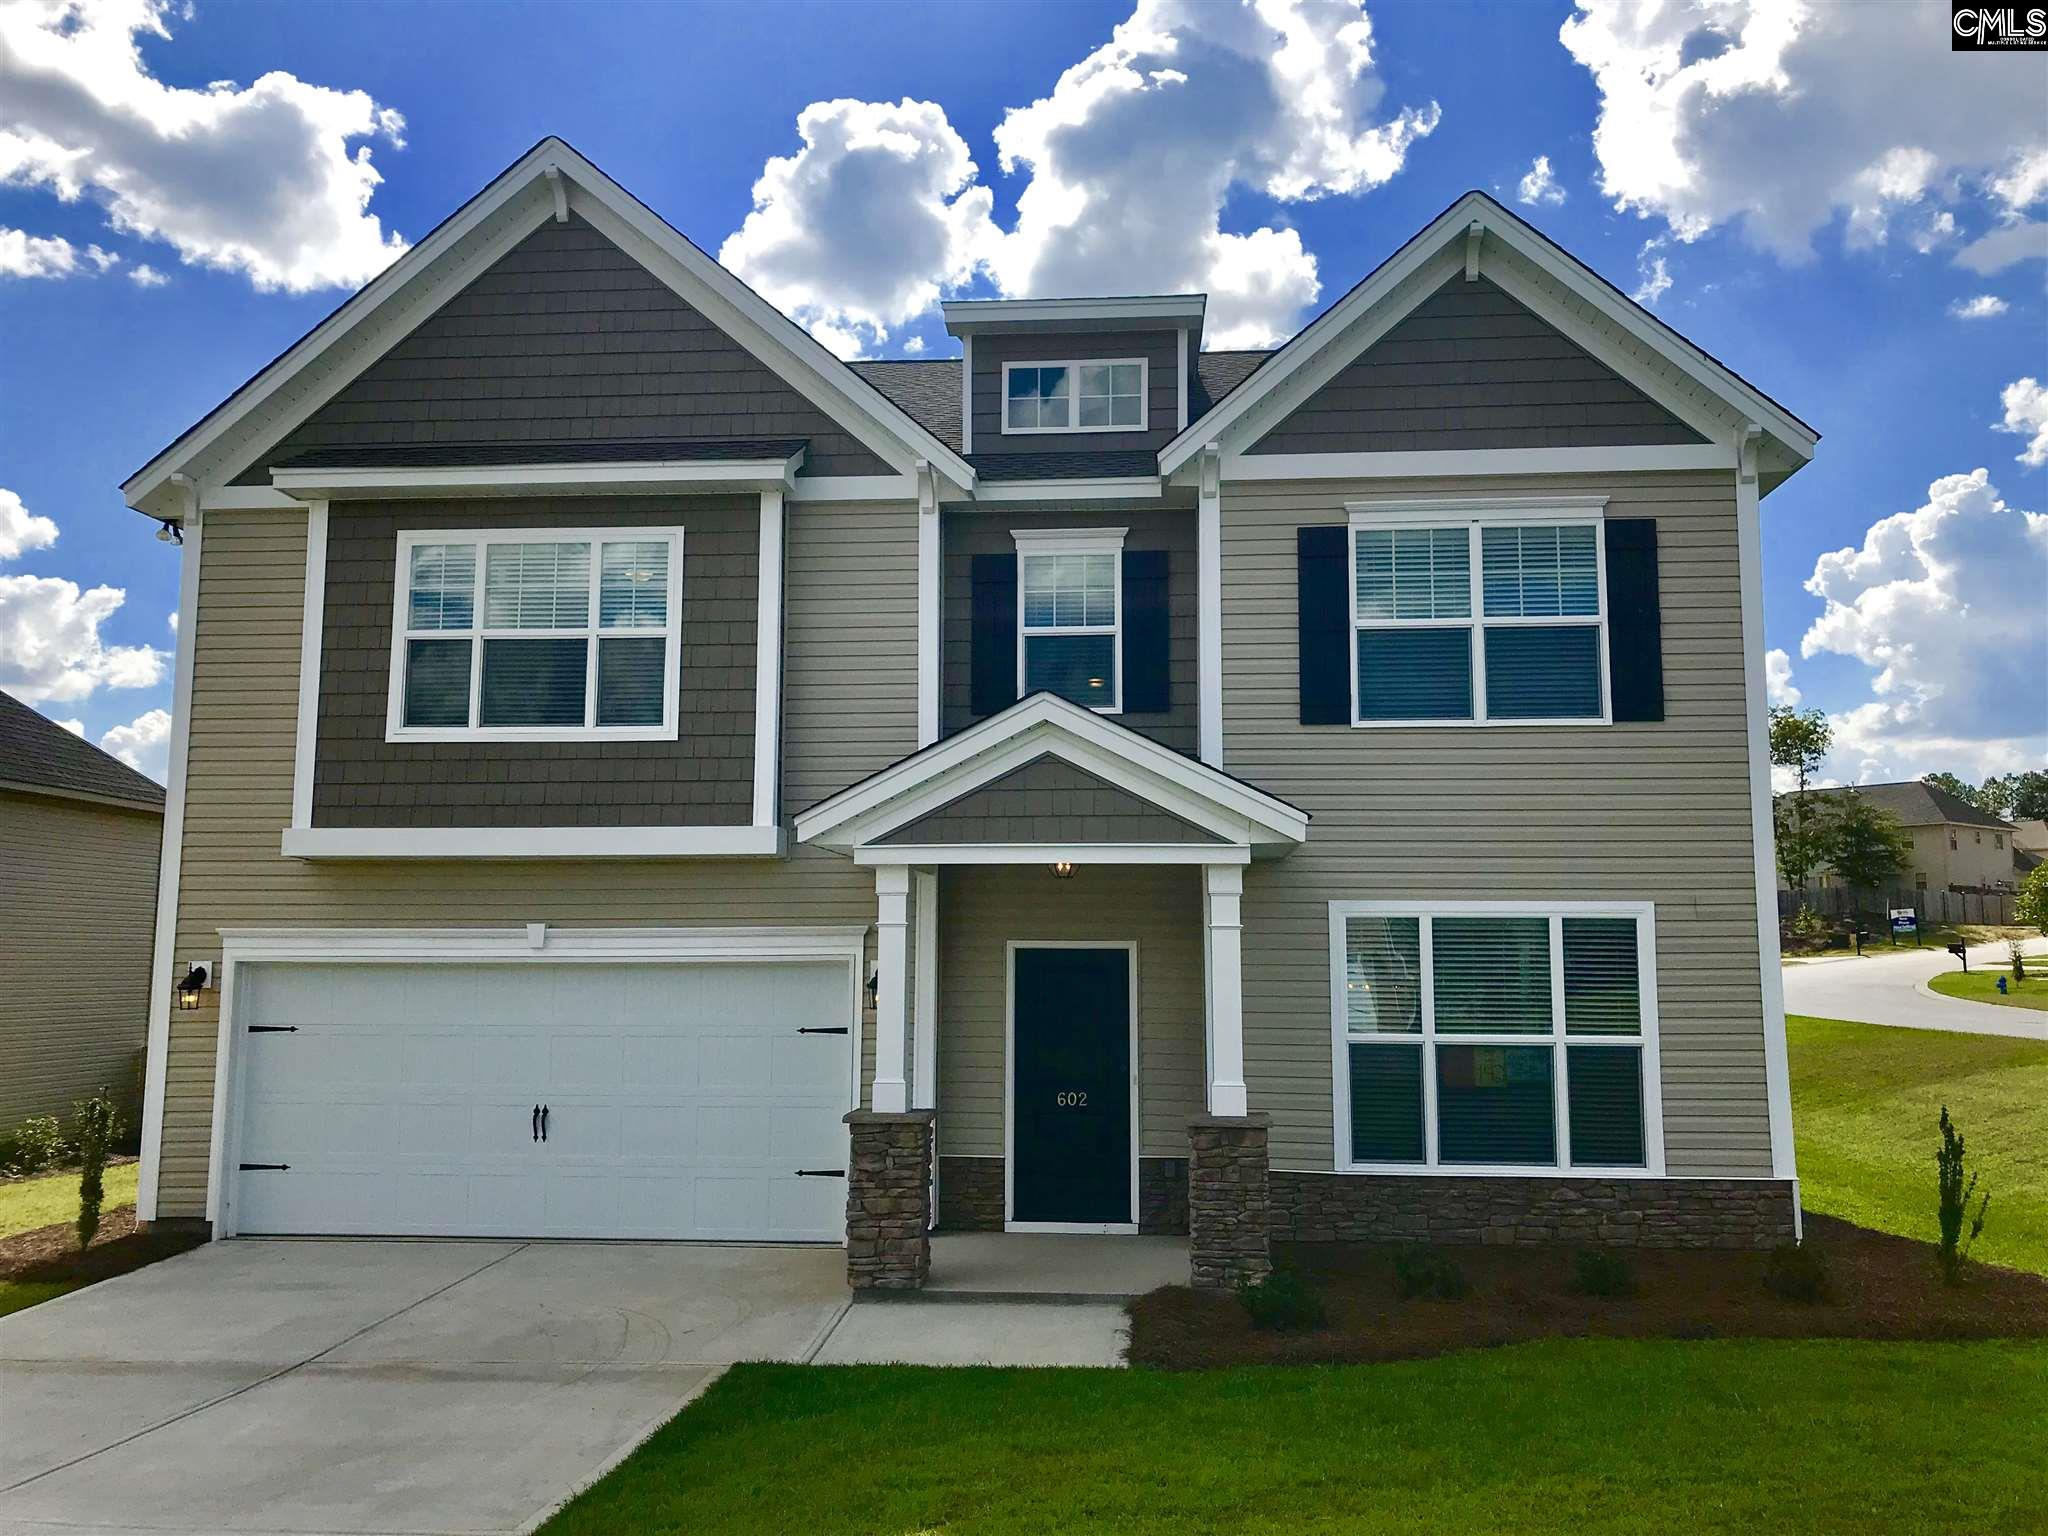 602 Dixie River #142 Lexington, SC 29073